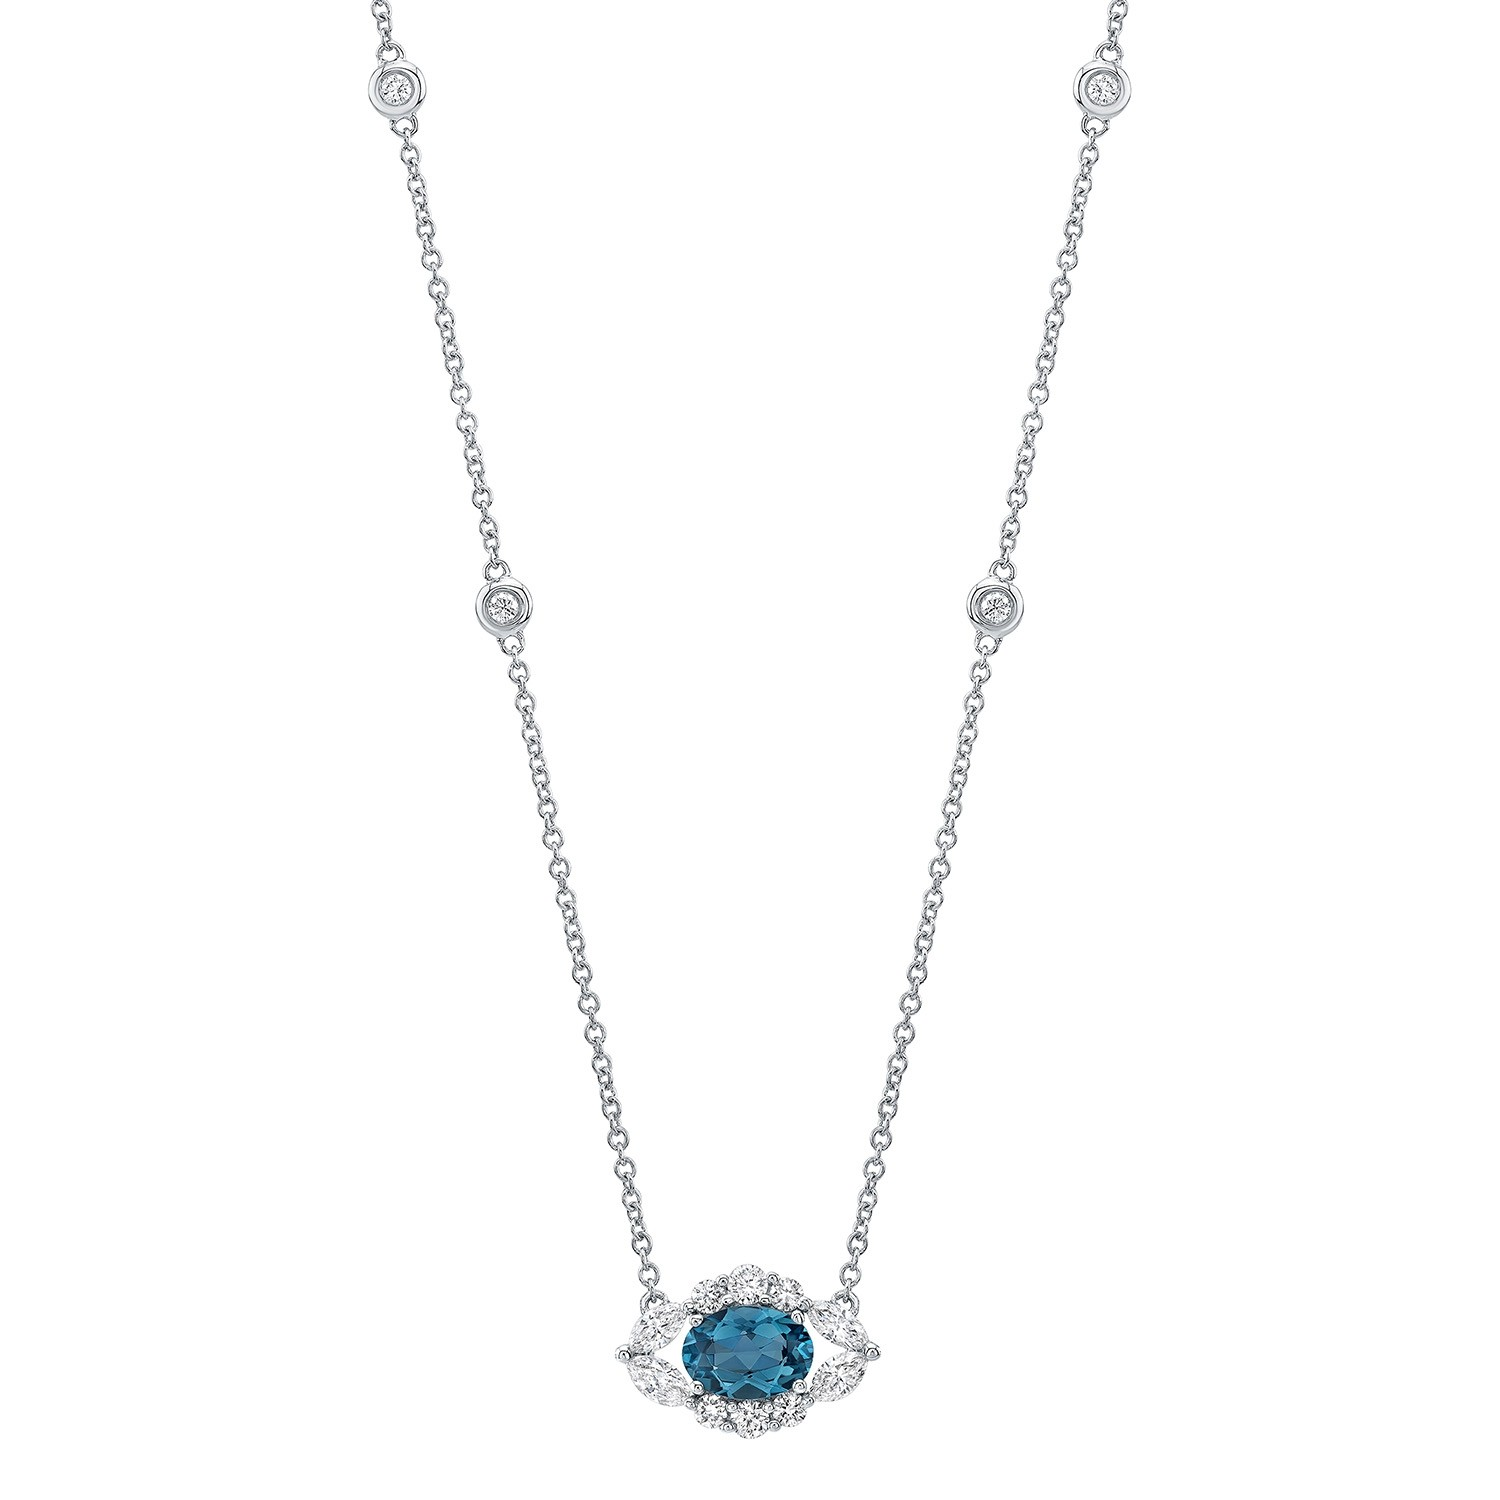 14k White Gold Diamond and Blue Topaz Oval Evil Eye Necklace